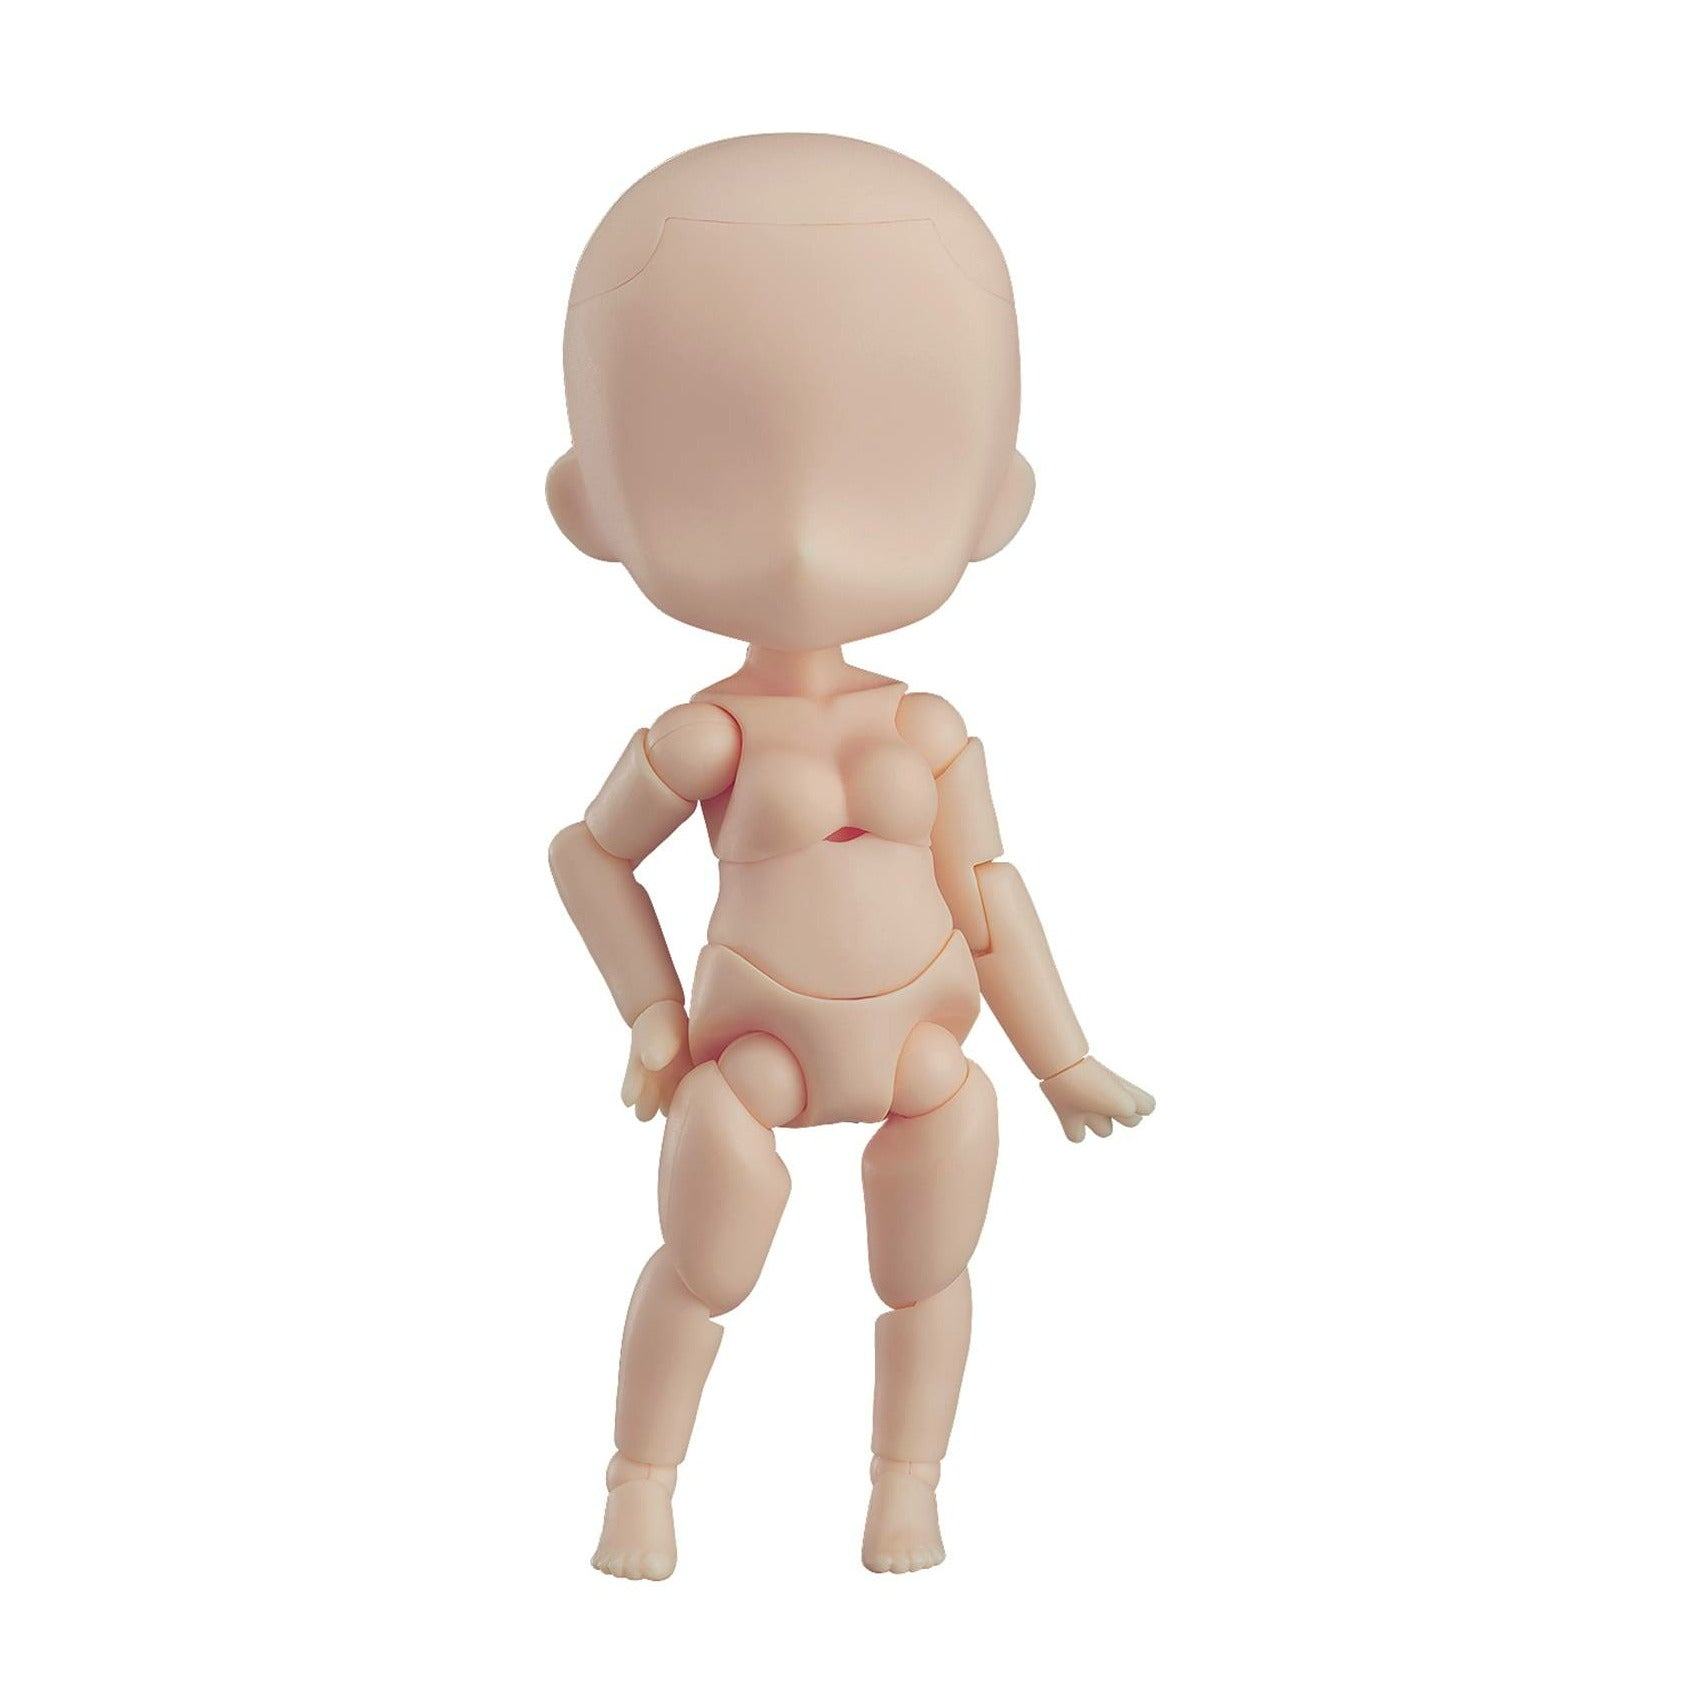 Nendoroid Doll Woman Archetype Action Figure Cream Color Ver